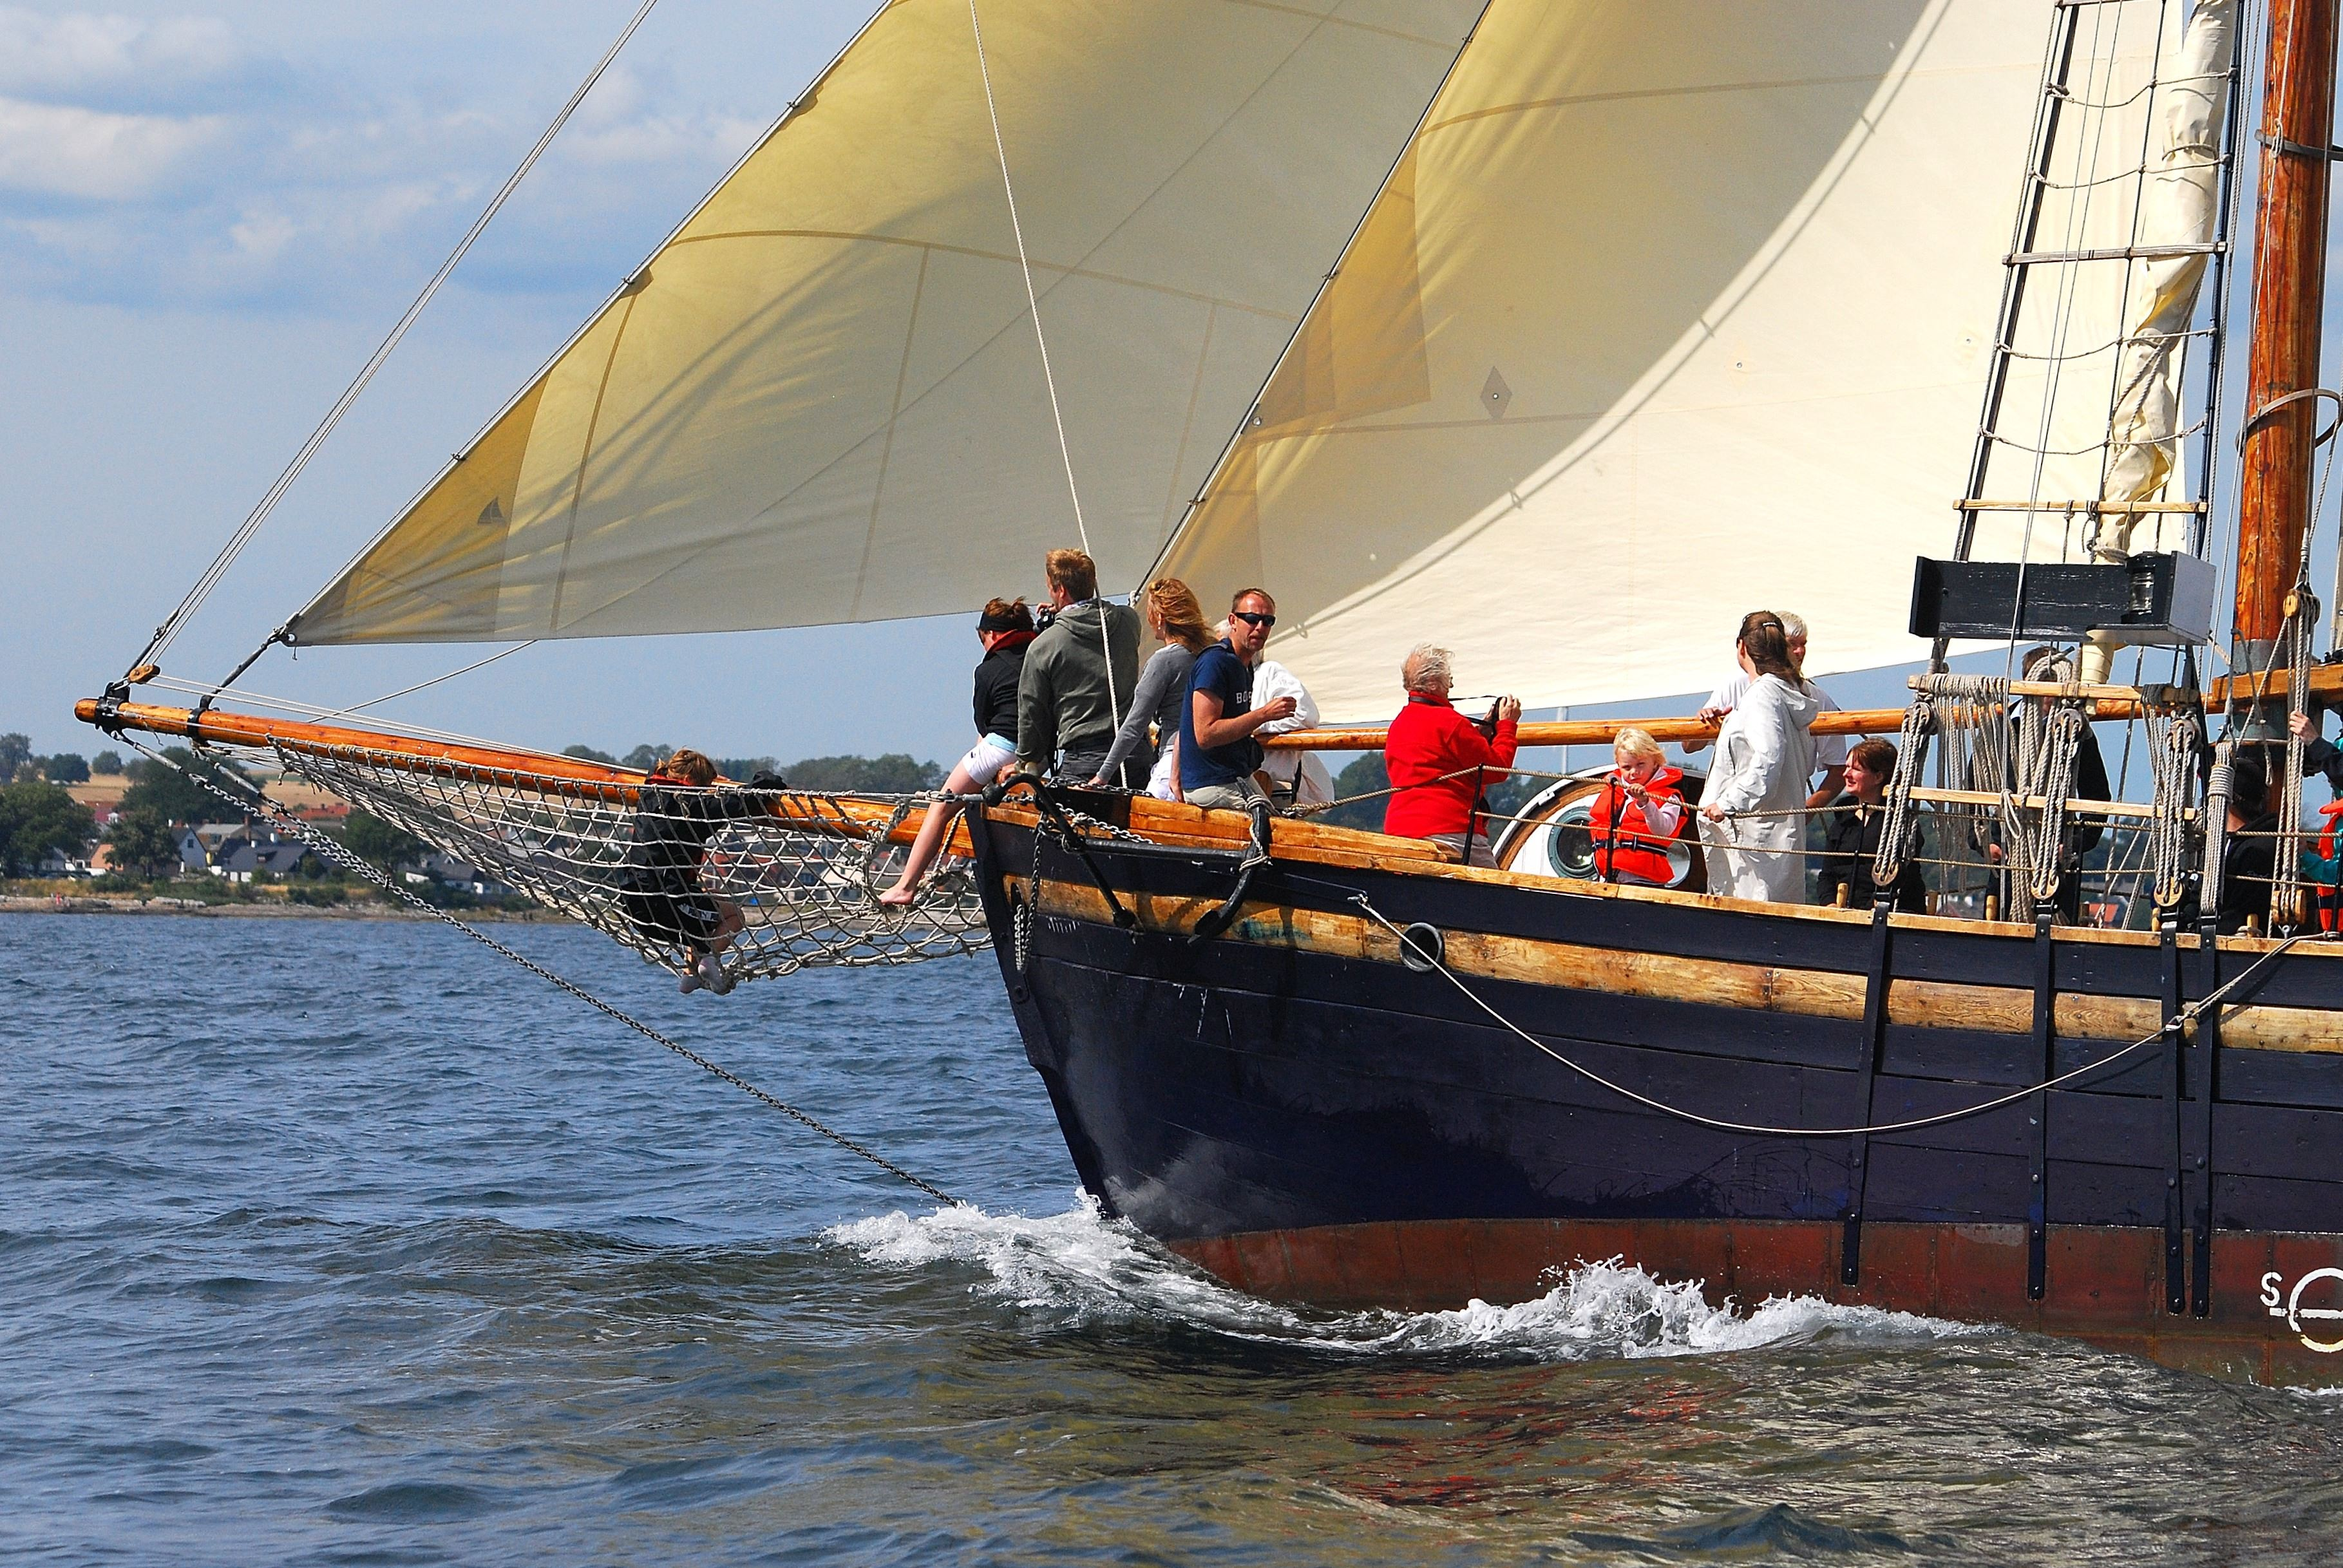 EXPERIENCE SAILING HISTORY WITH THE GAFF CUTTER HOPPET AV BRANTEVIK